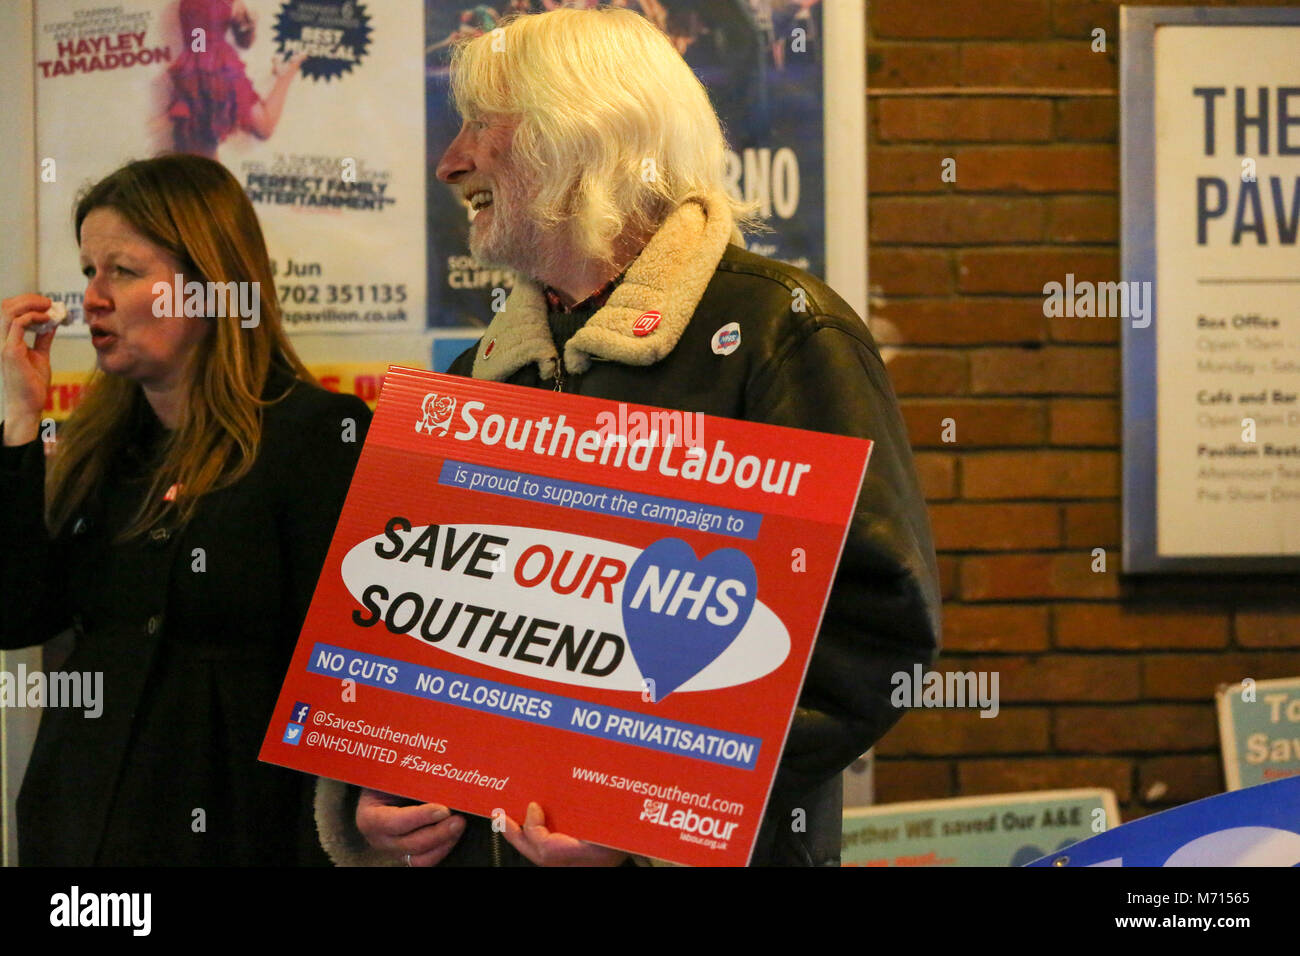 Southend on Sea, Essex, UK. 7th Mar, 2018. A small demonstration outside the Cliffs Pavilion to protest at the proposed merger of three local hospitals. At the same time The Sustainability and Transformation Partnership (STP) are holding the final Southend public meeting to present the proposed changes. Penelope Barritt/Alamy Live News Stock Photo